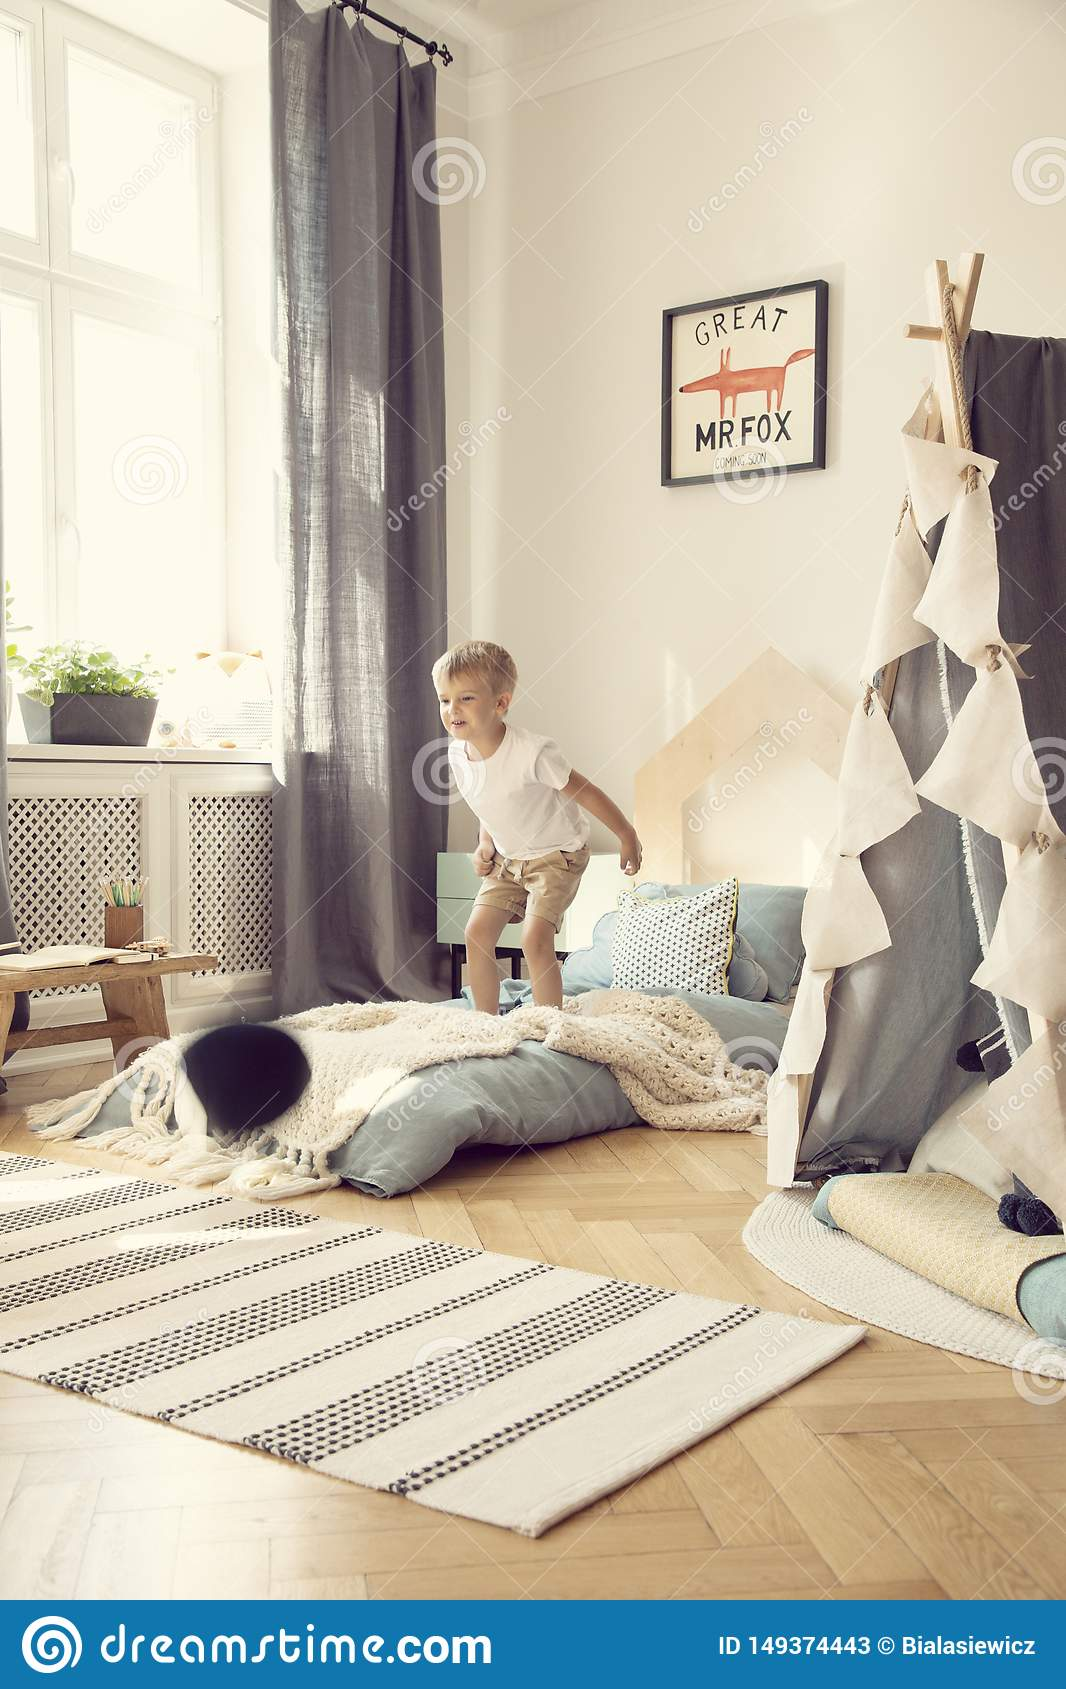 Boy Jumping On A Mattress In A Cozy Playroom Interior Stock Image Image Of Boho Floor 149374443